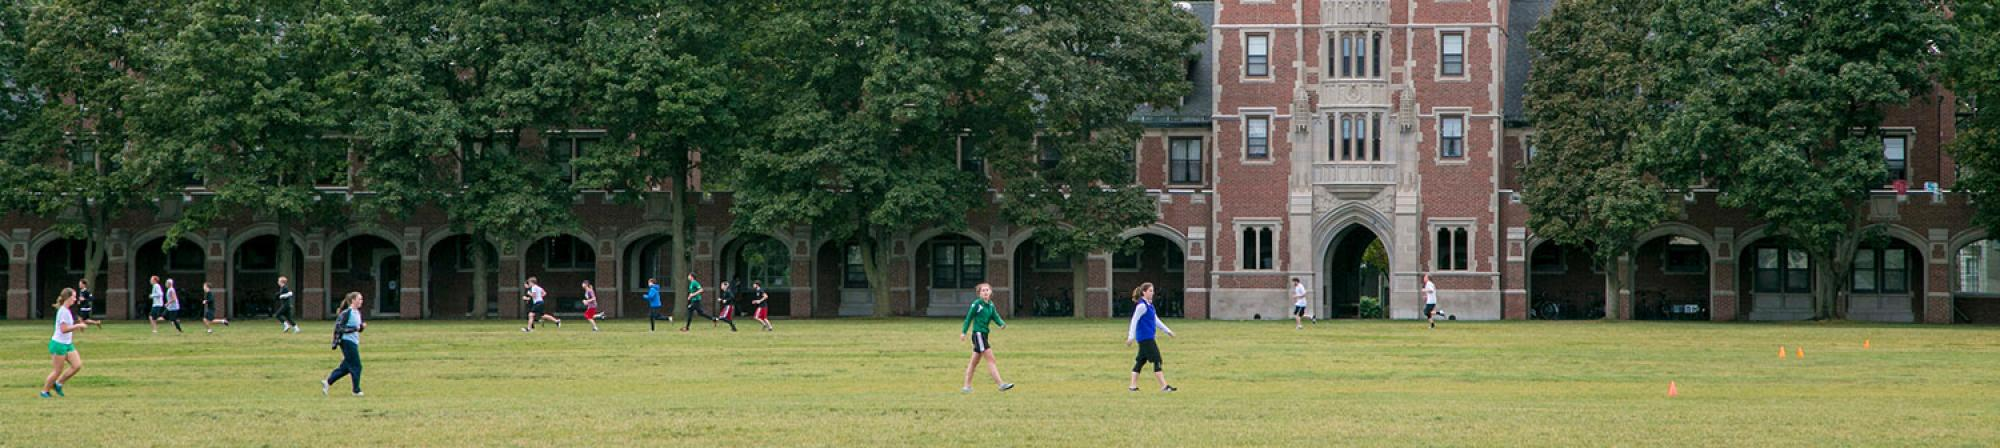 Students relax on Mac field